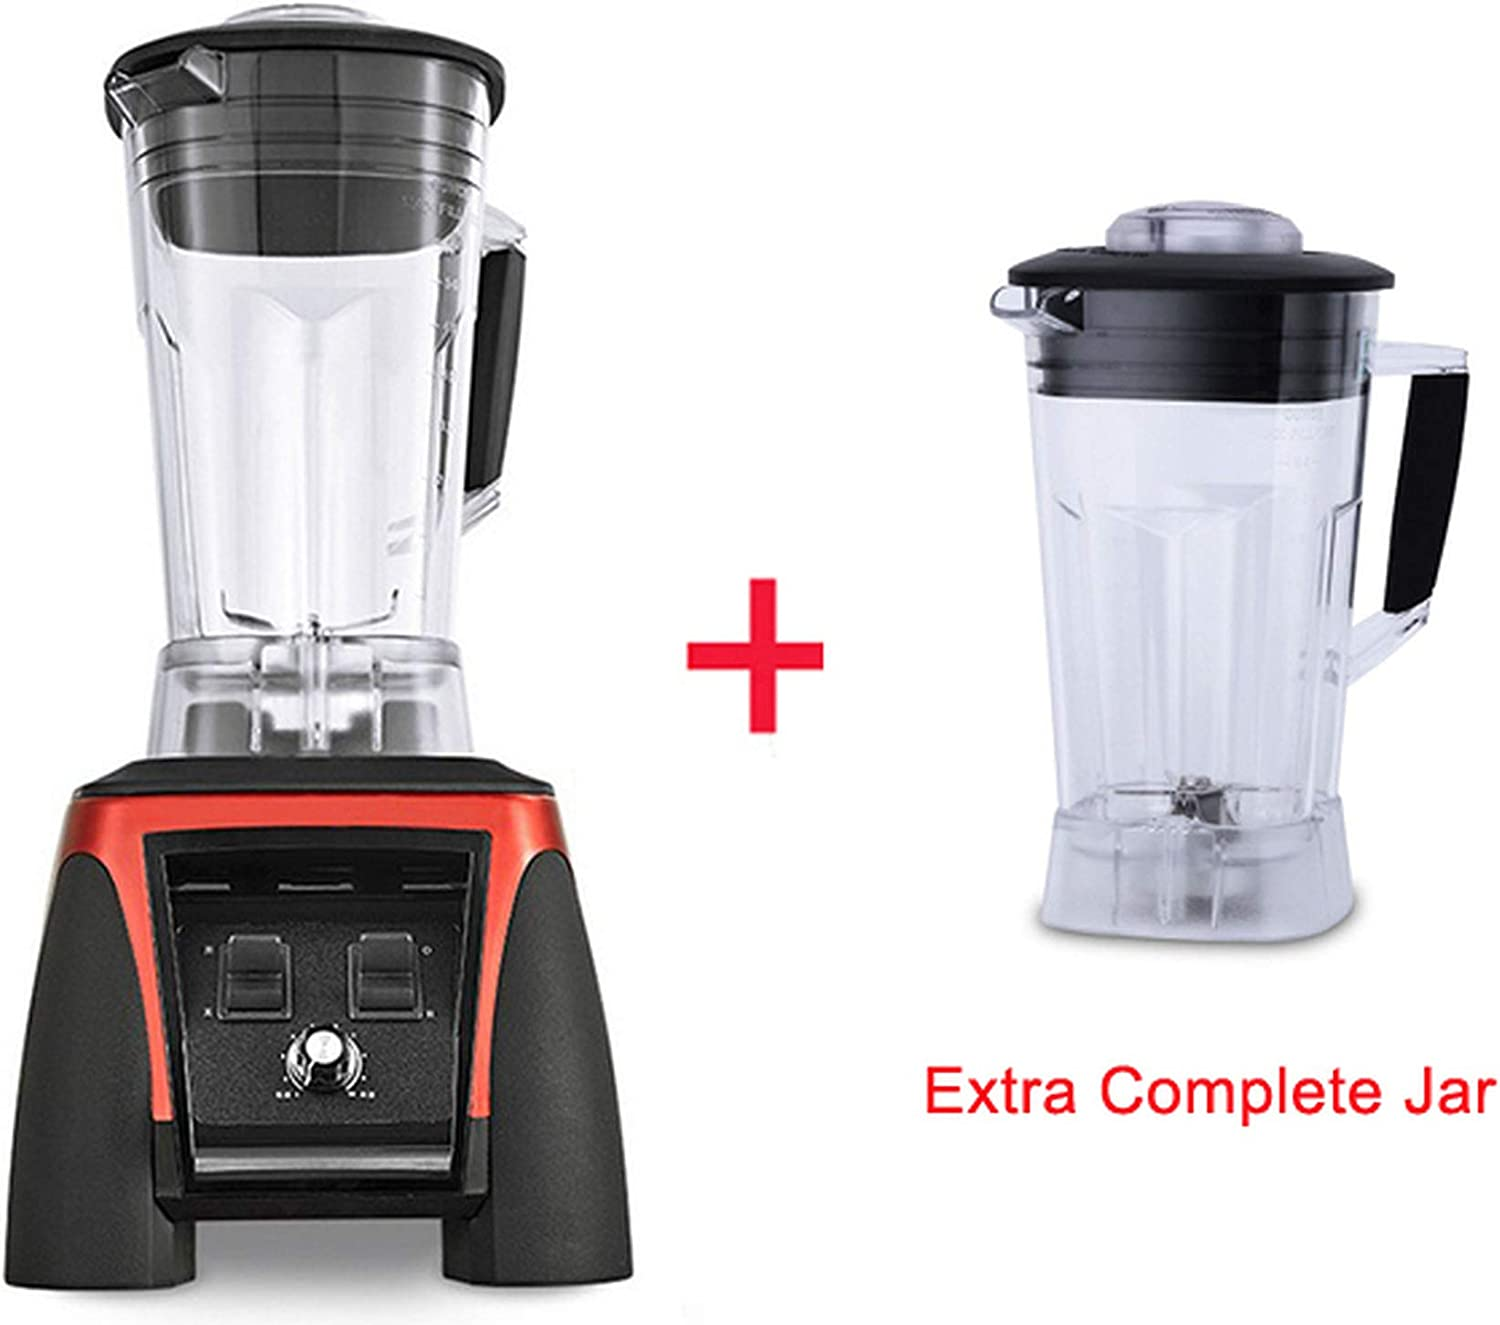 220V/110V 3HP BPA FREE 2L 2200W professional smoothies power blender food heavy duty mixer juicer food processor,RED EXTRA JAR